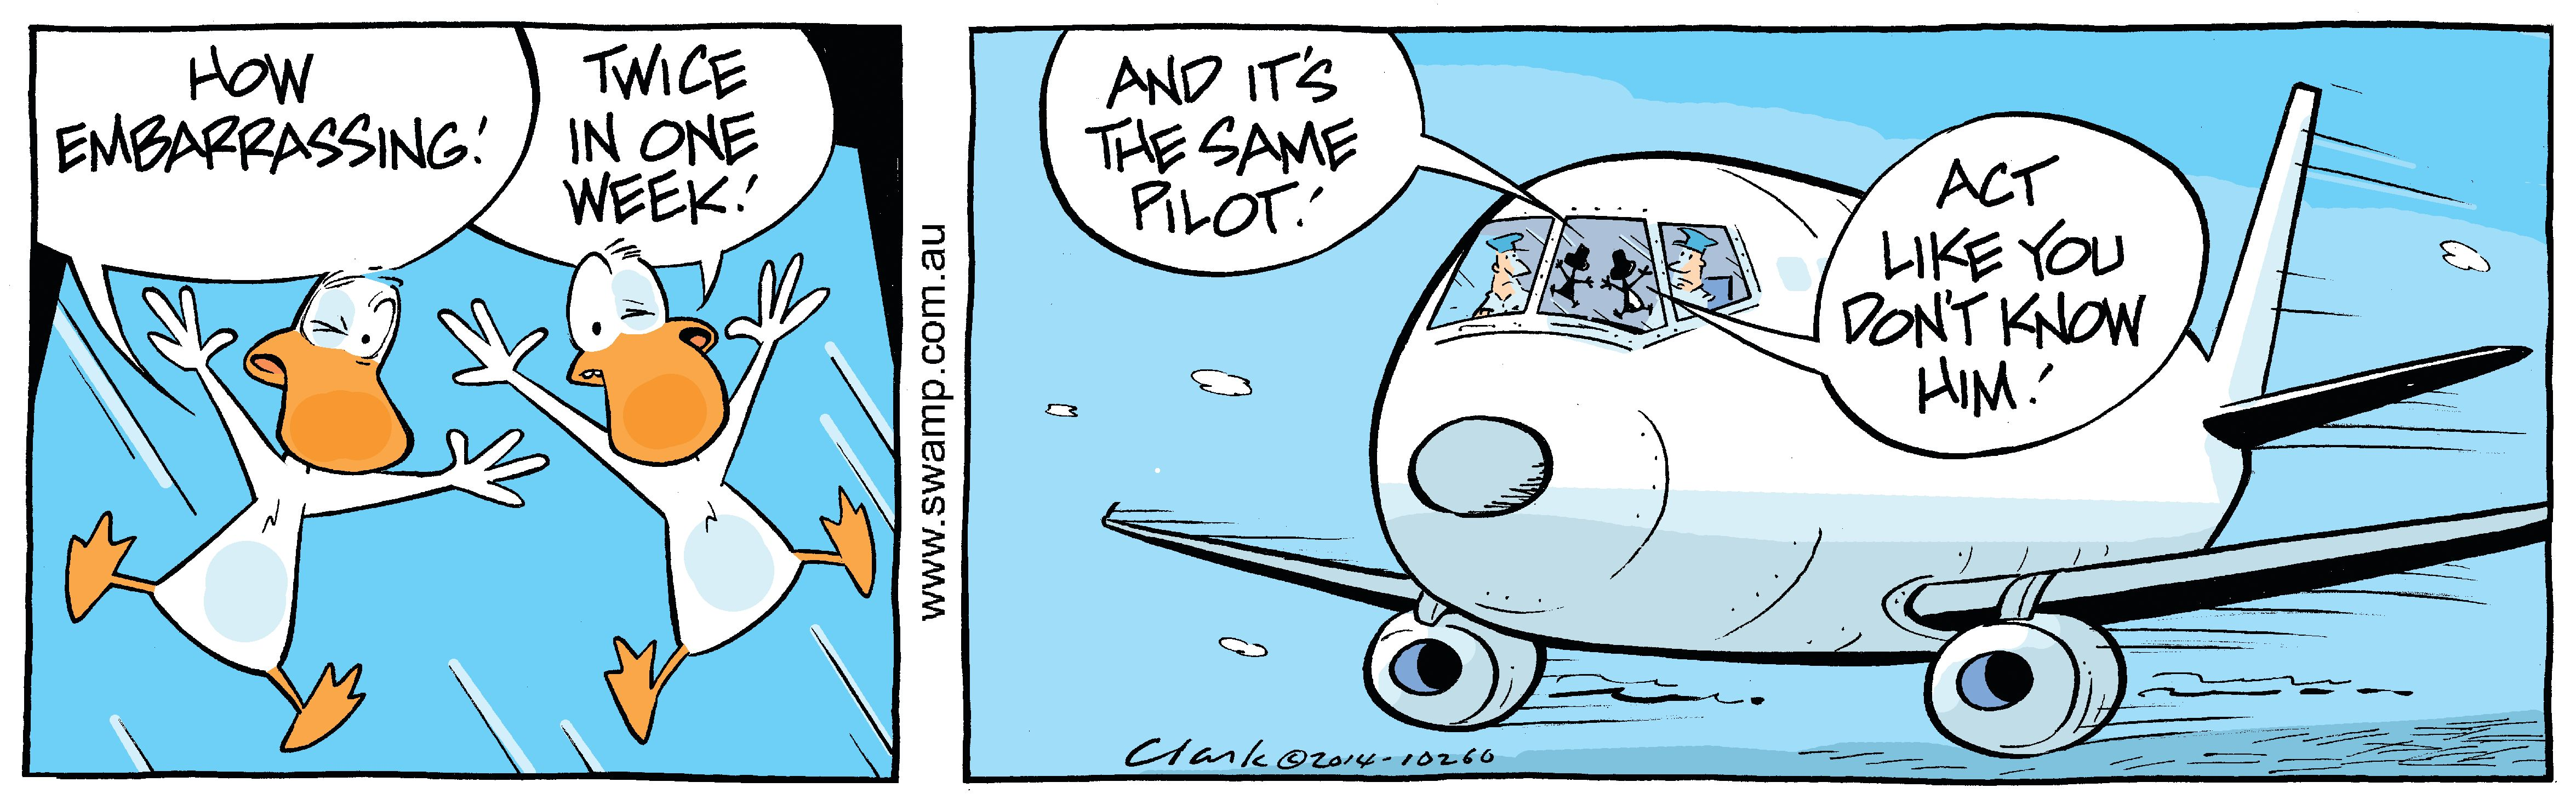 Birdstrike Again Comic